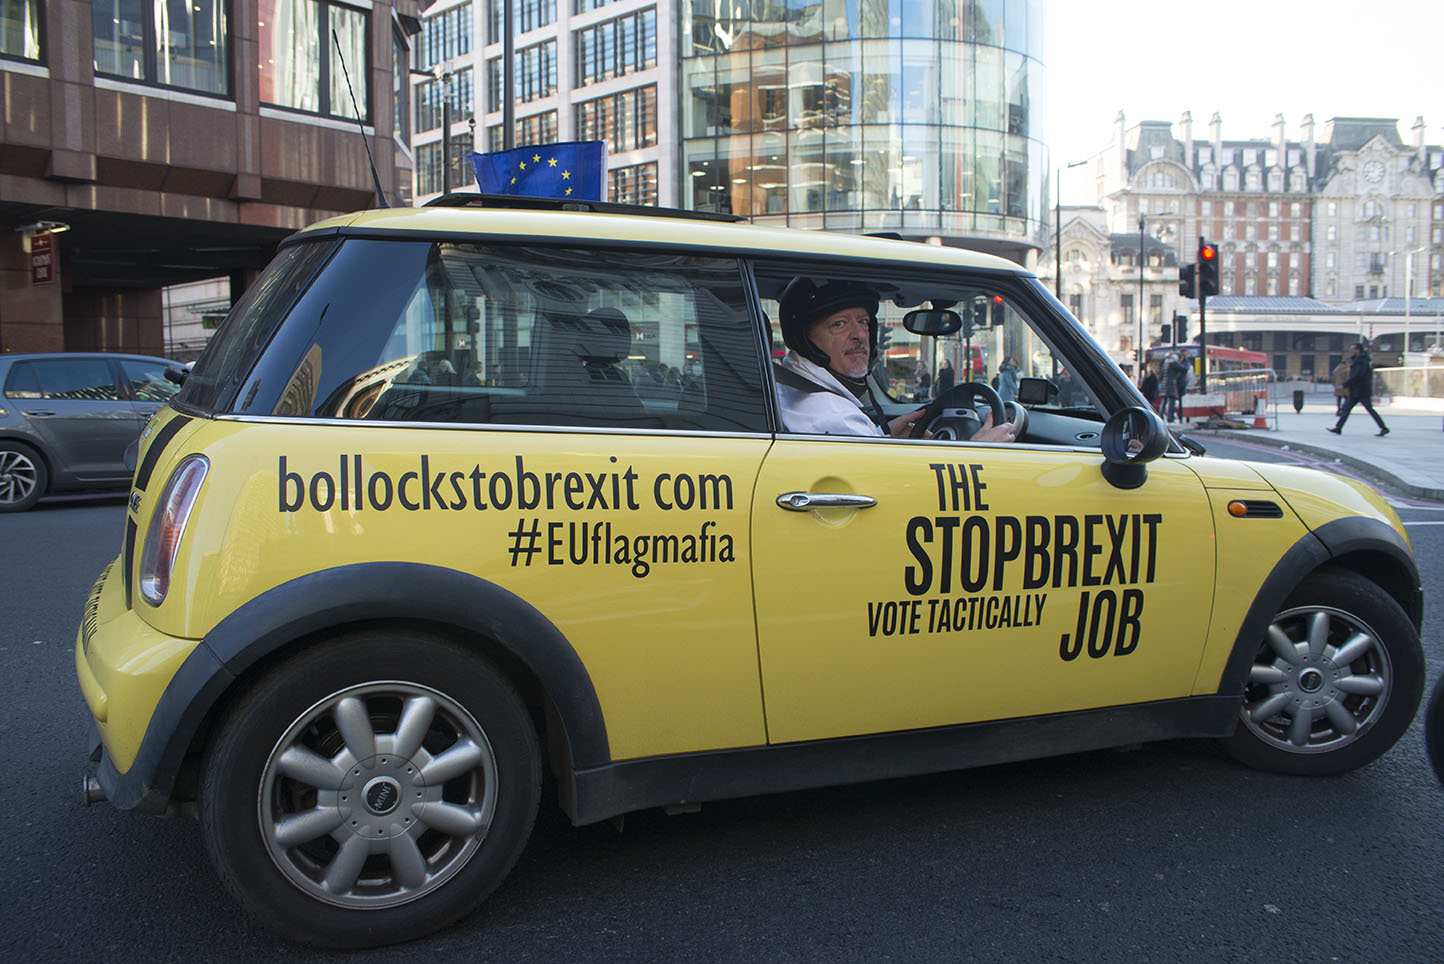 3 Dec 2019 - London, UK - Protest minis visit he streets of London in a stunt organised and crowdfunded by anti-brexit campaigning group EU Flag Mafia.